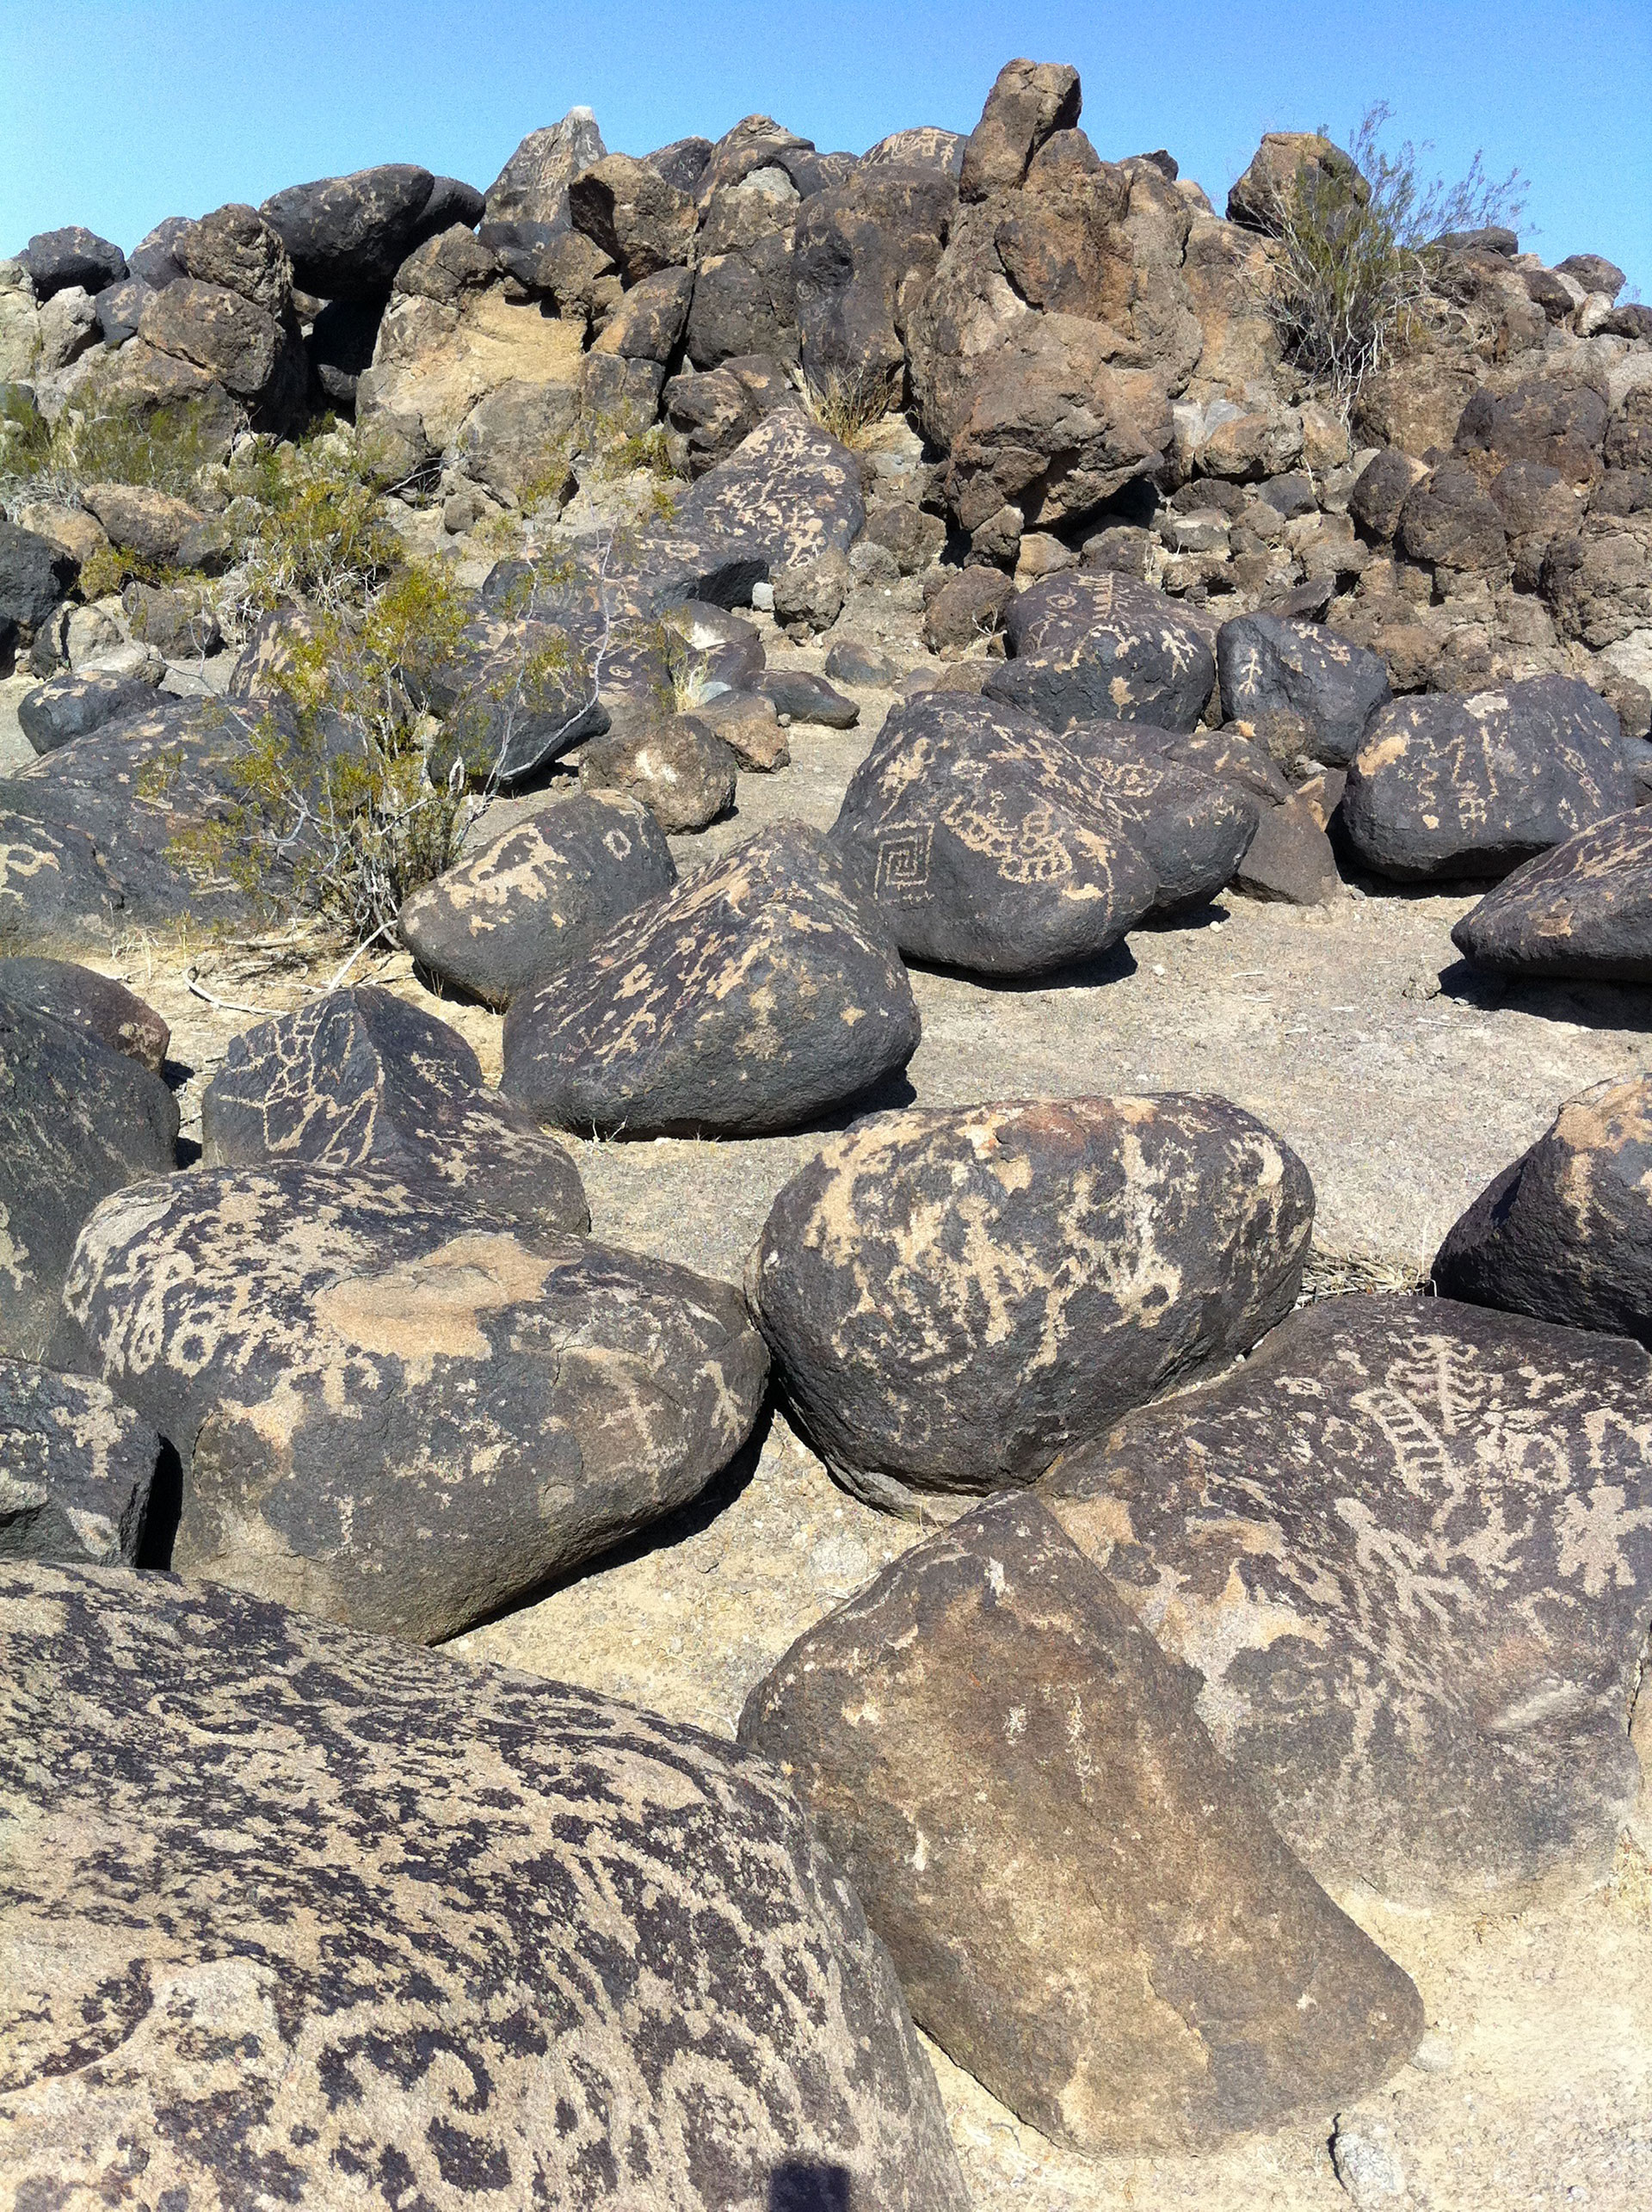 Picture of petroglyphs featured on an array of erratic boulders with hybrid figures. Pictograph Rock site, Arizona, United States of America.